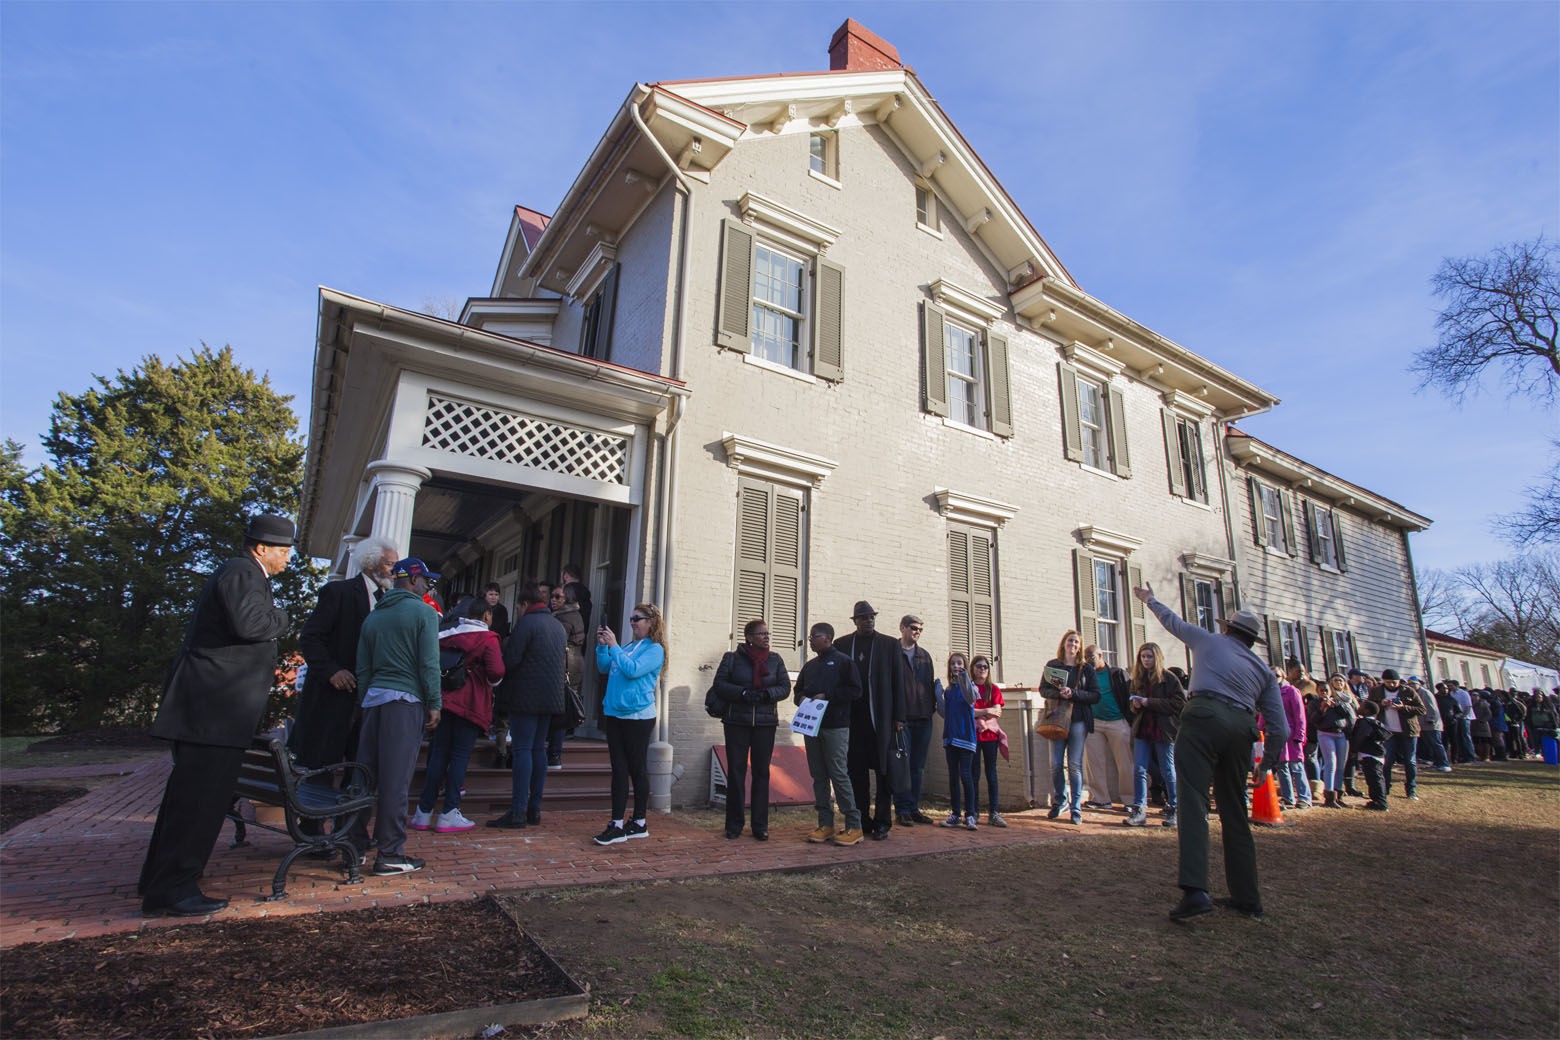 """<p><strong>Visit the home of an American hero</strong></p> <p>Cedar Hill, a stately home atop a 50-foot hill in Anacostia, was the place abolitionist and orator Frederick Douglass called home the last 20 years of his life.</p> <p>Carefully restored to its 1890s-era glory, you can visit and learn about the extraordinary life of Douglass, who escaped from slavery to become one the leaders of the abolitionist movement. Guided tours cost just $1 per person. You can <a href=""""https://www.nps.gov/frdo/planyourvisit/guidedtours.htm"""" target=""""_blank"""" rel=""""noopener"""">find more information on reserving a tour</a> on the National Park Service website. While you&#8217;re in the neighborhood, the famous massive chair at the corner of Martin Luther King Avenue and V Streets in Southeast. Originally installed in 1959 to showcase a furniture company&#8217;s wares, the giant chair is now an iconic D.C. landmark.</p>"""